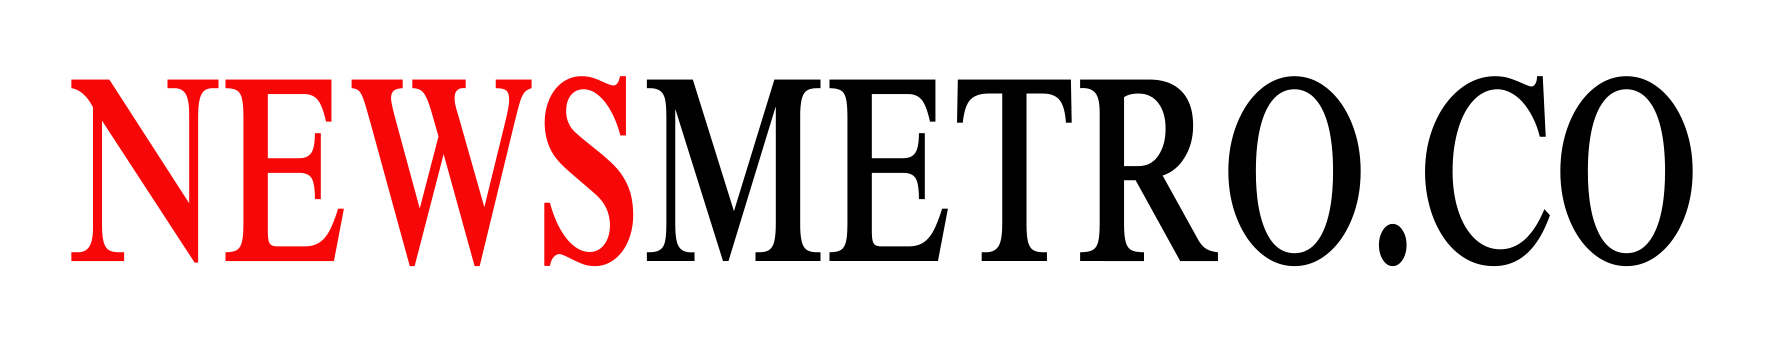 NEWSMETRO.CO